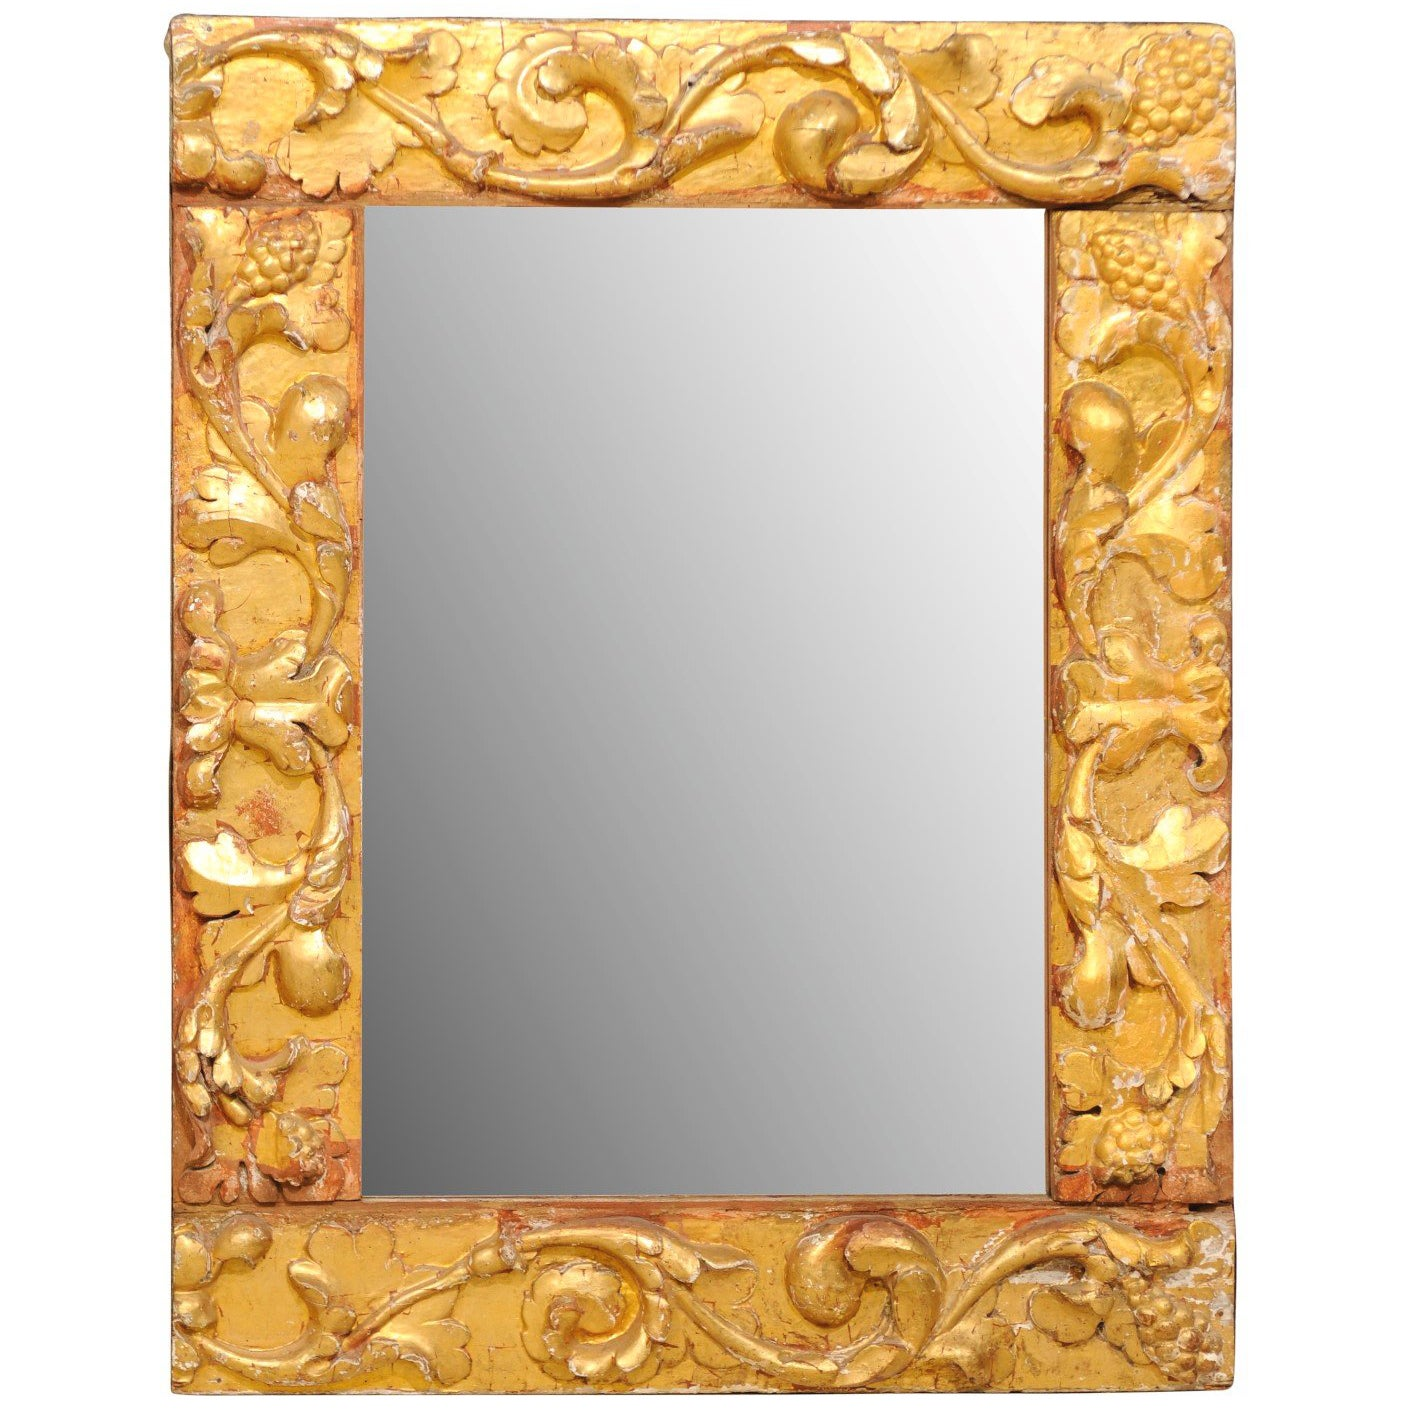 Exquisite Italian Giltwood Carved Mirror of 19th Century Italian Fragments